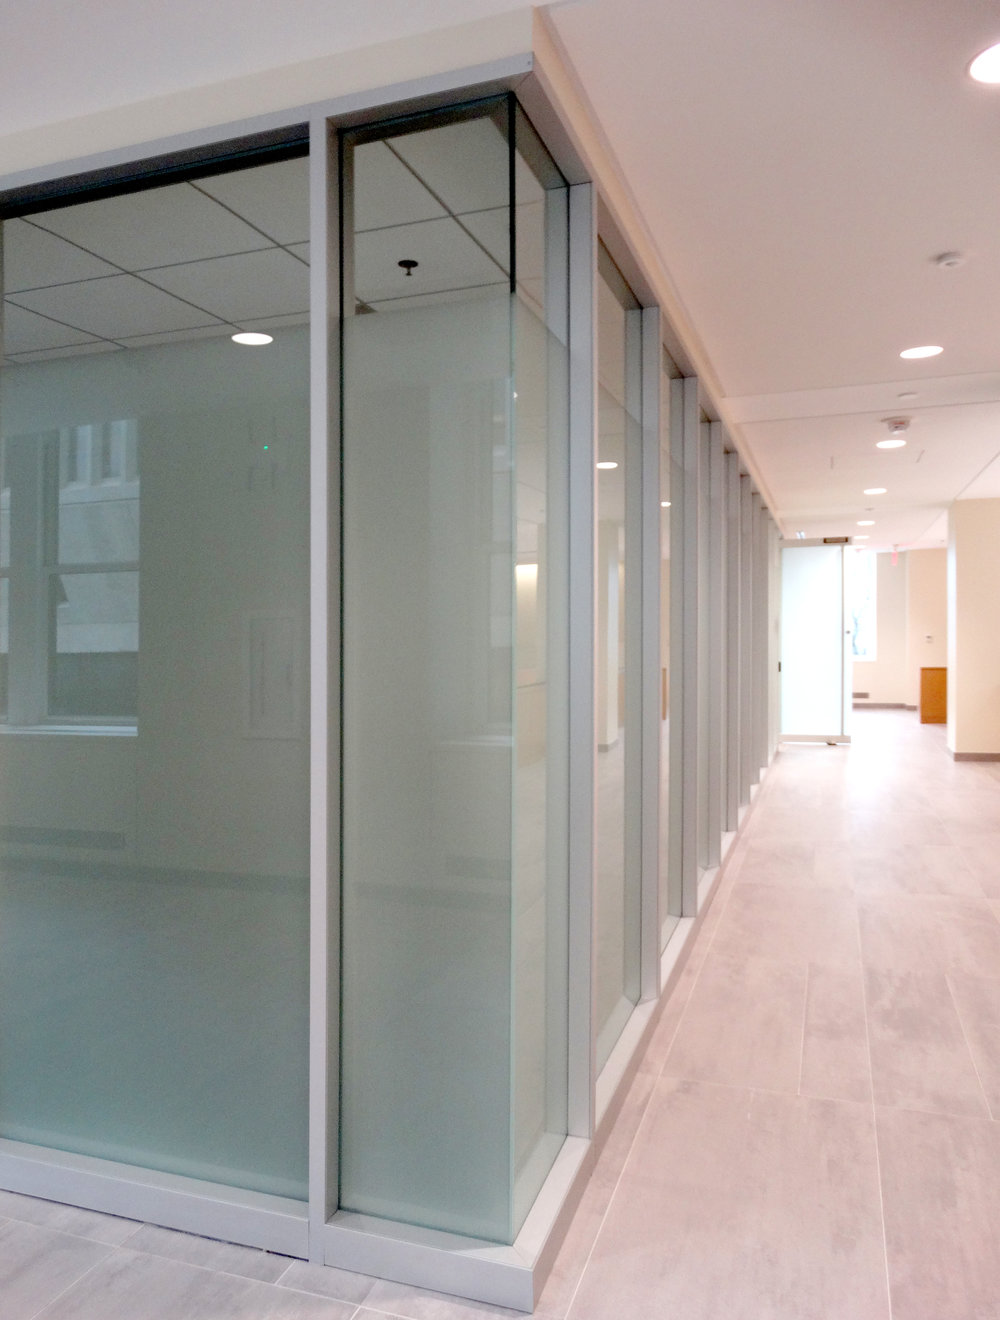 Encase Aluminum Glass Wall System - Spaceworks AI.jpg